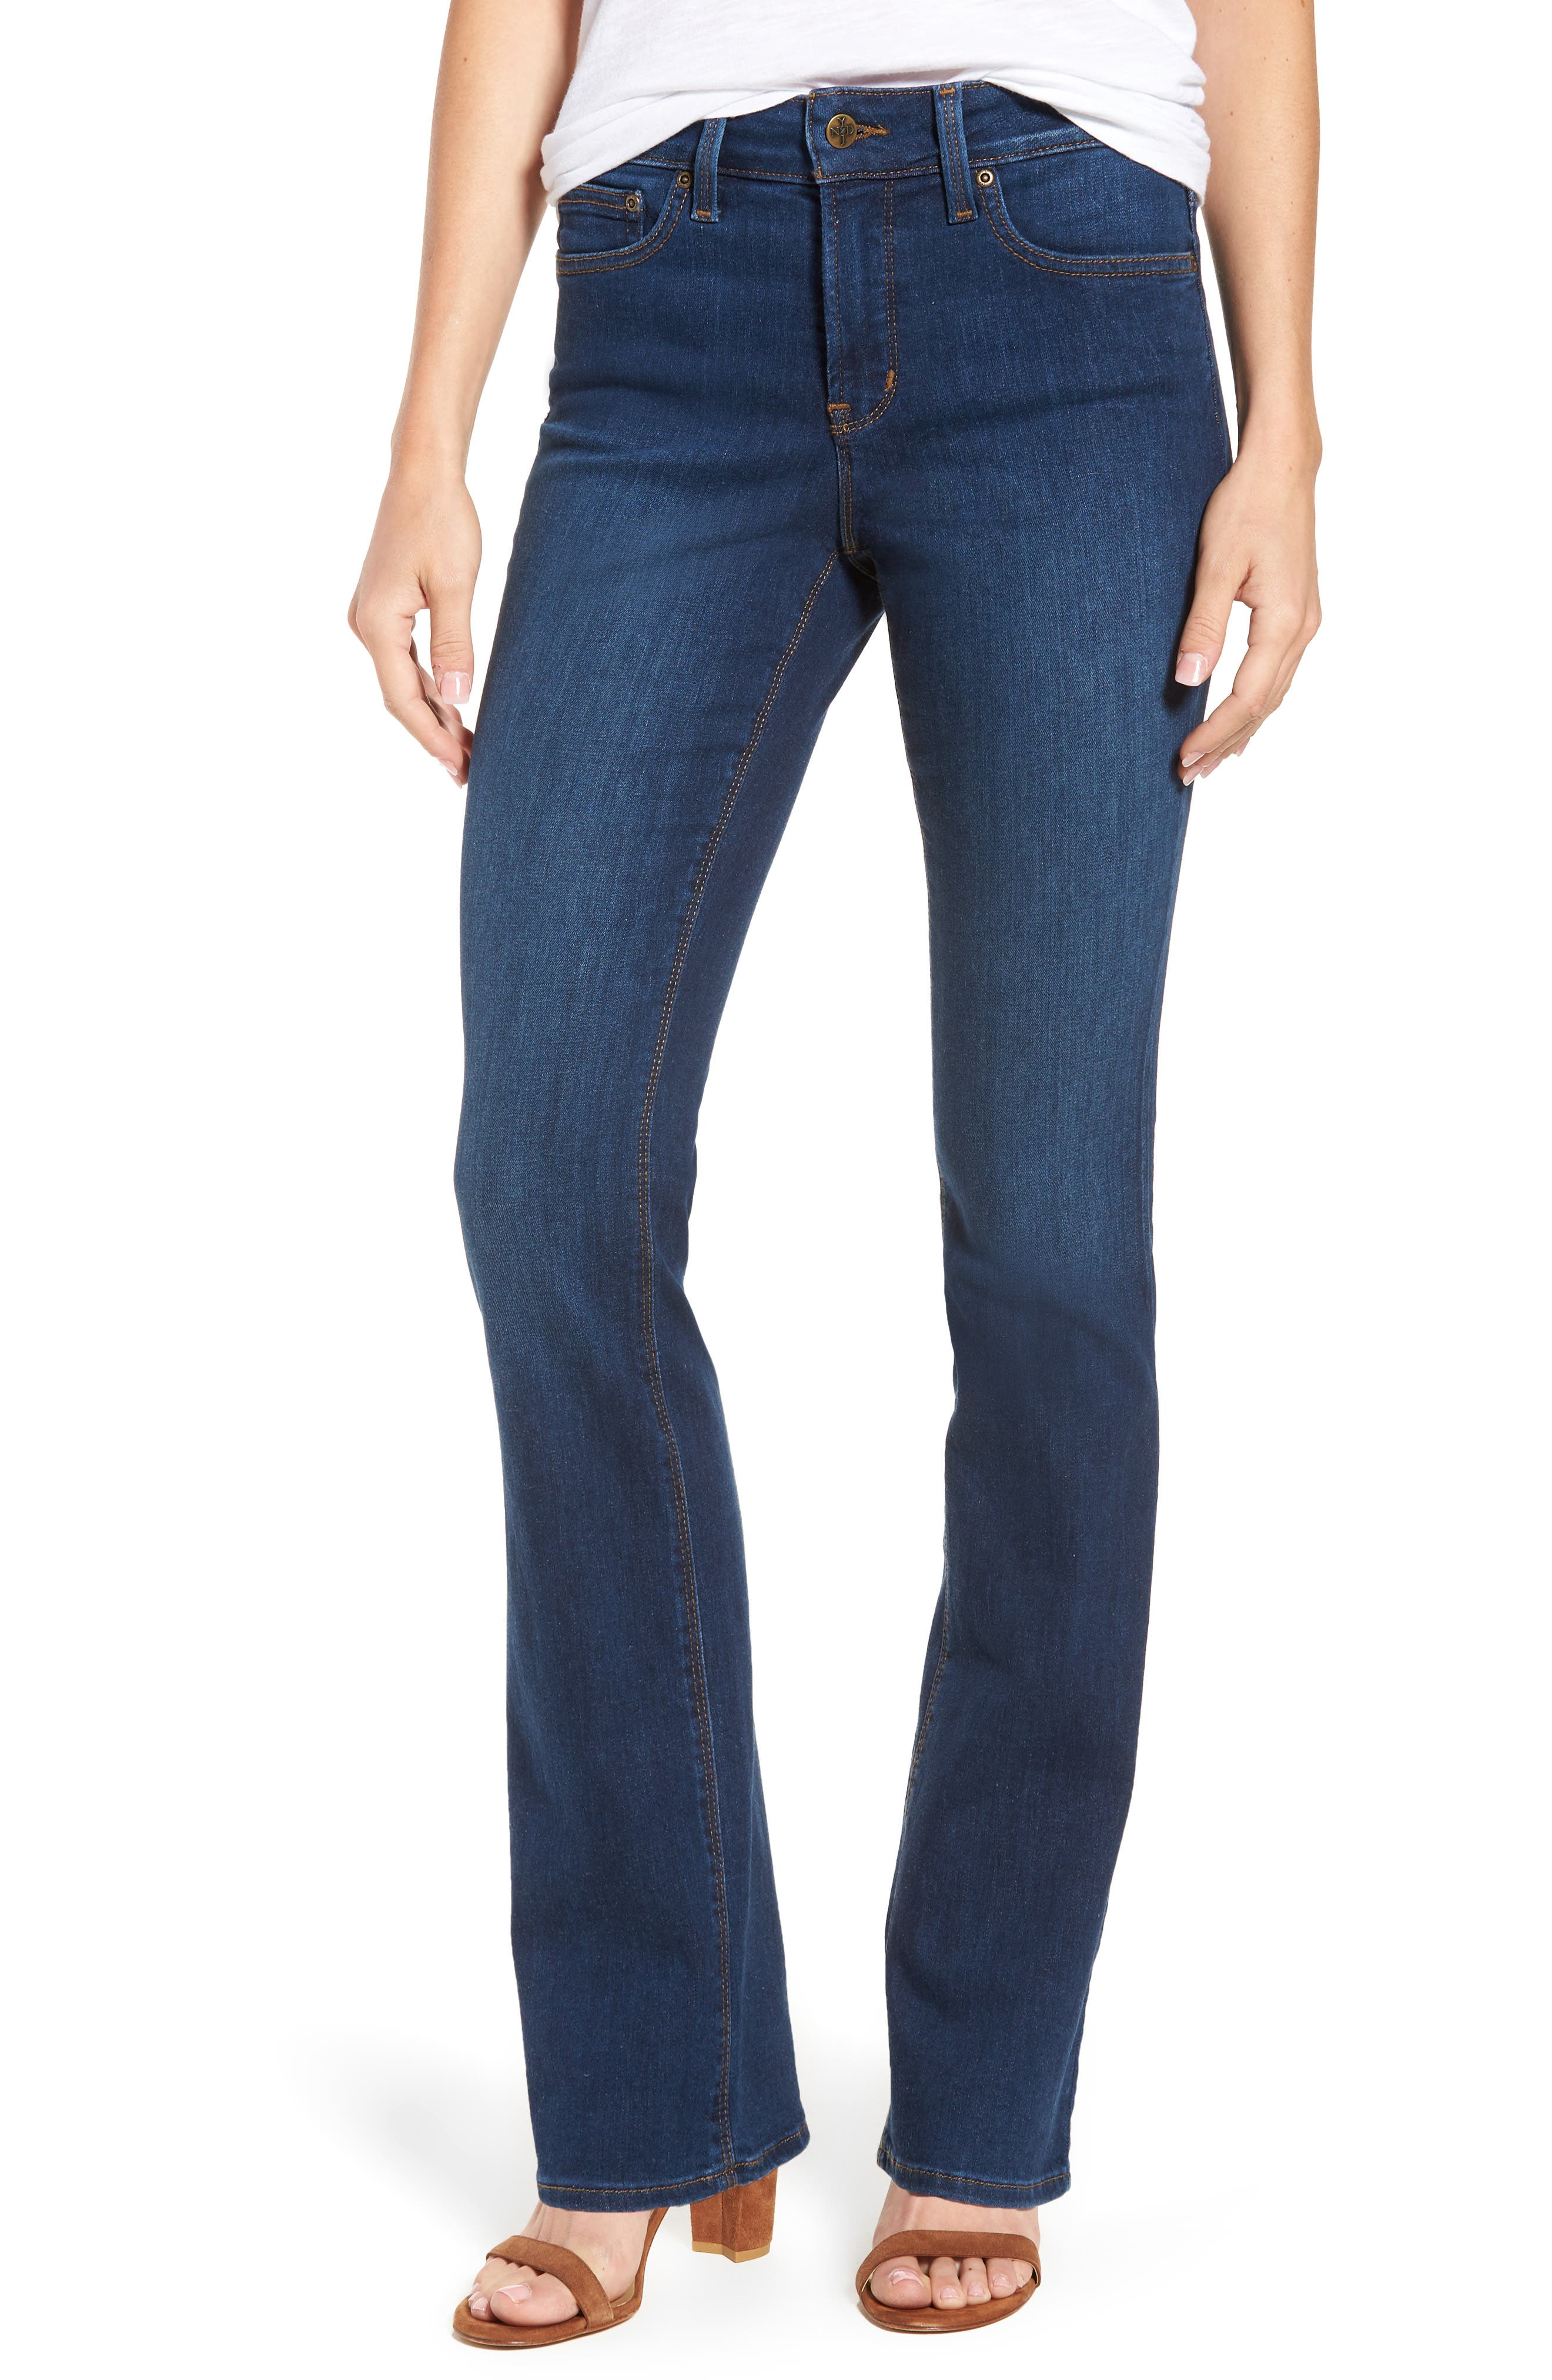 Billie Mini Bootcut Jeans,                         Main,                         color, Cooper